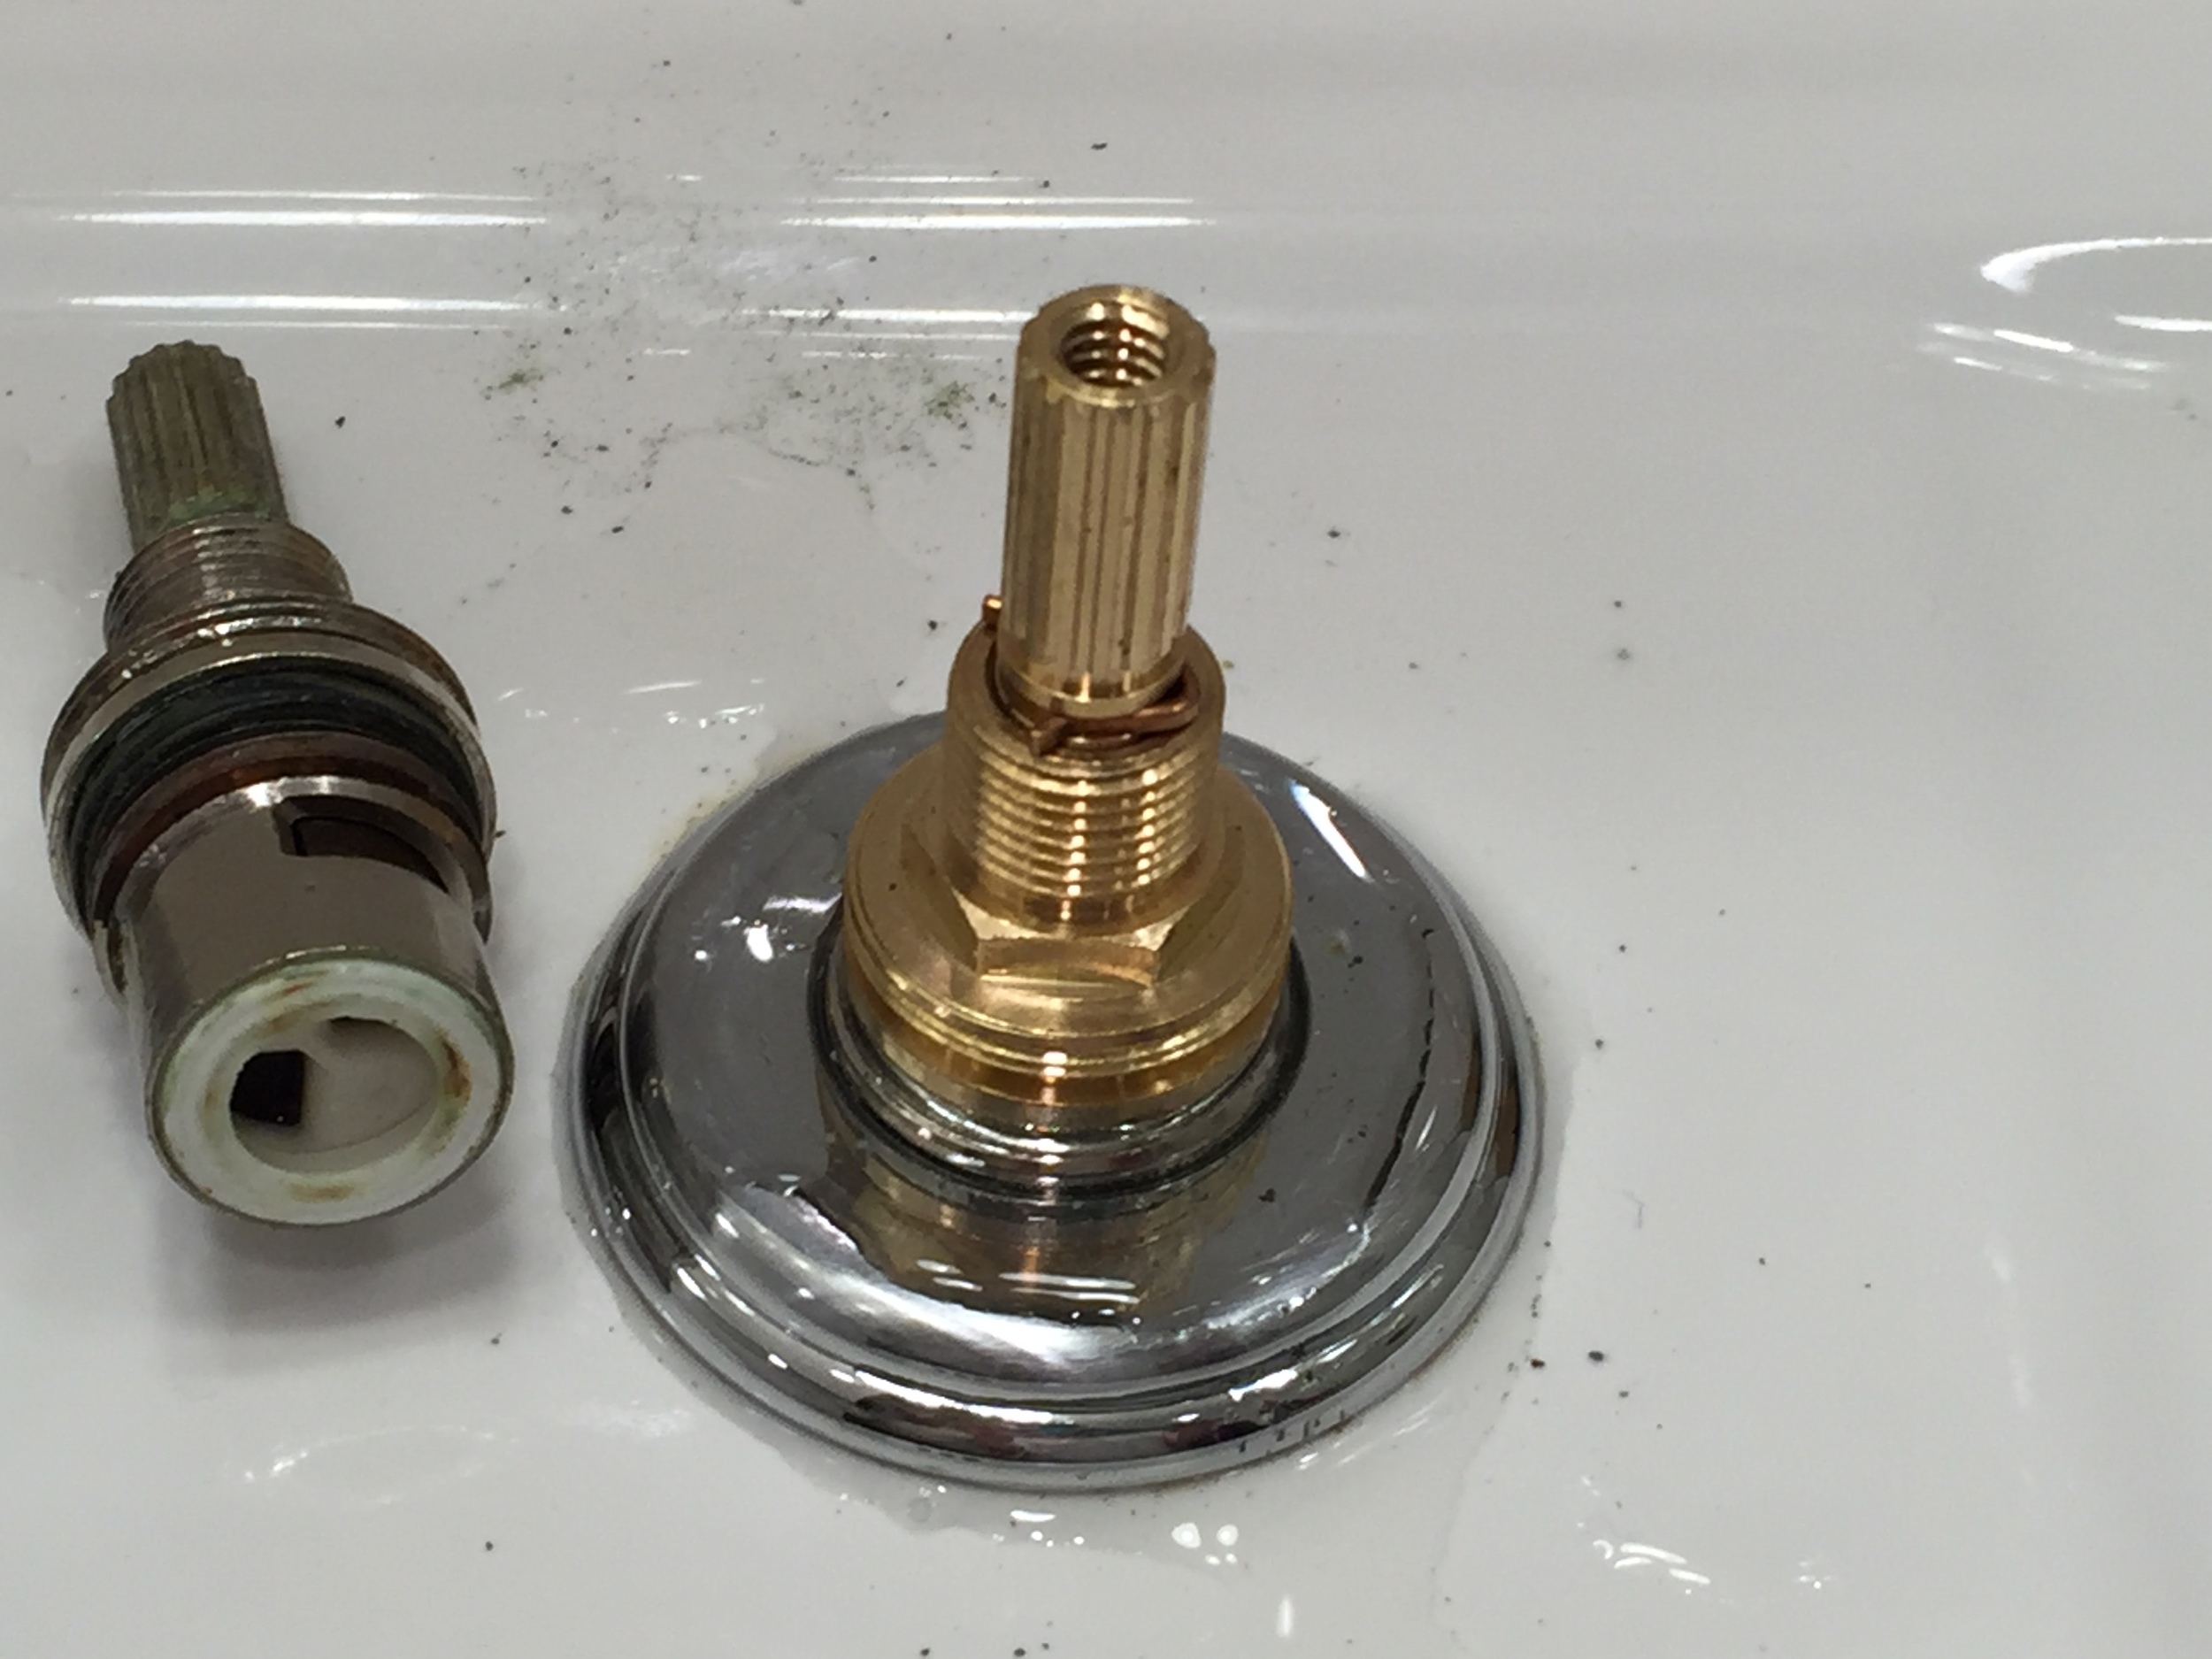 New cartridge installed in the faucet...